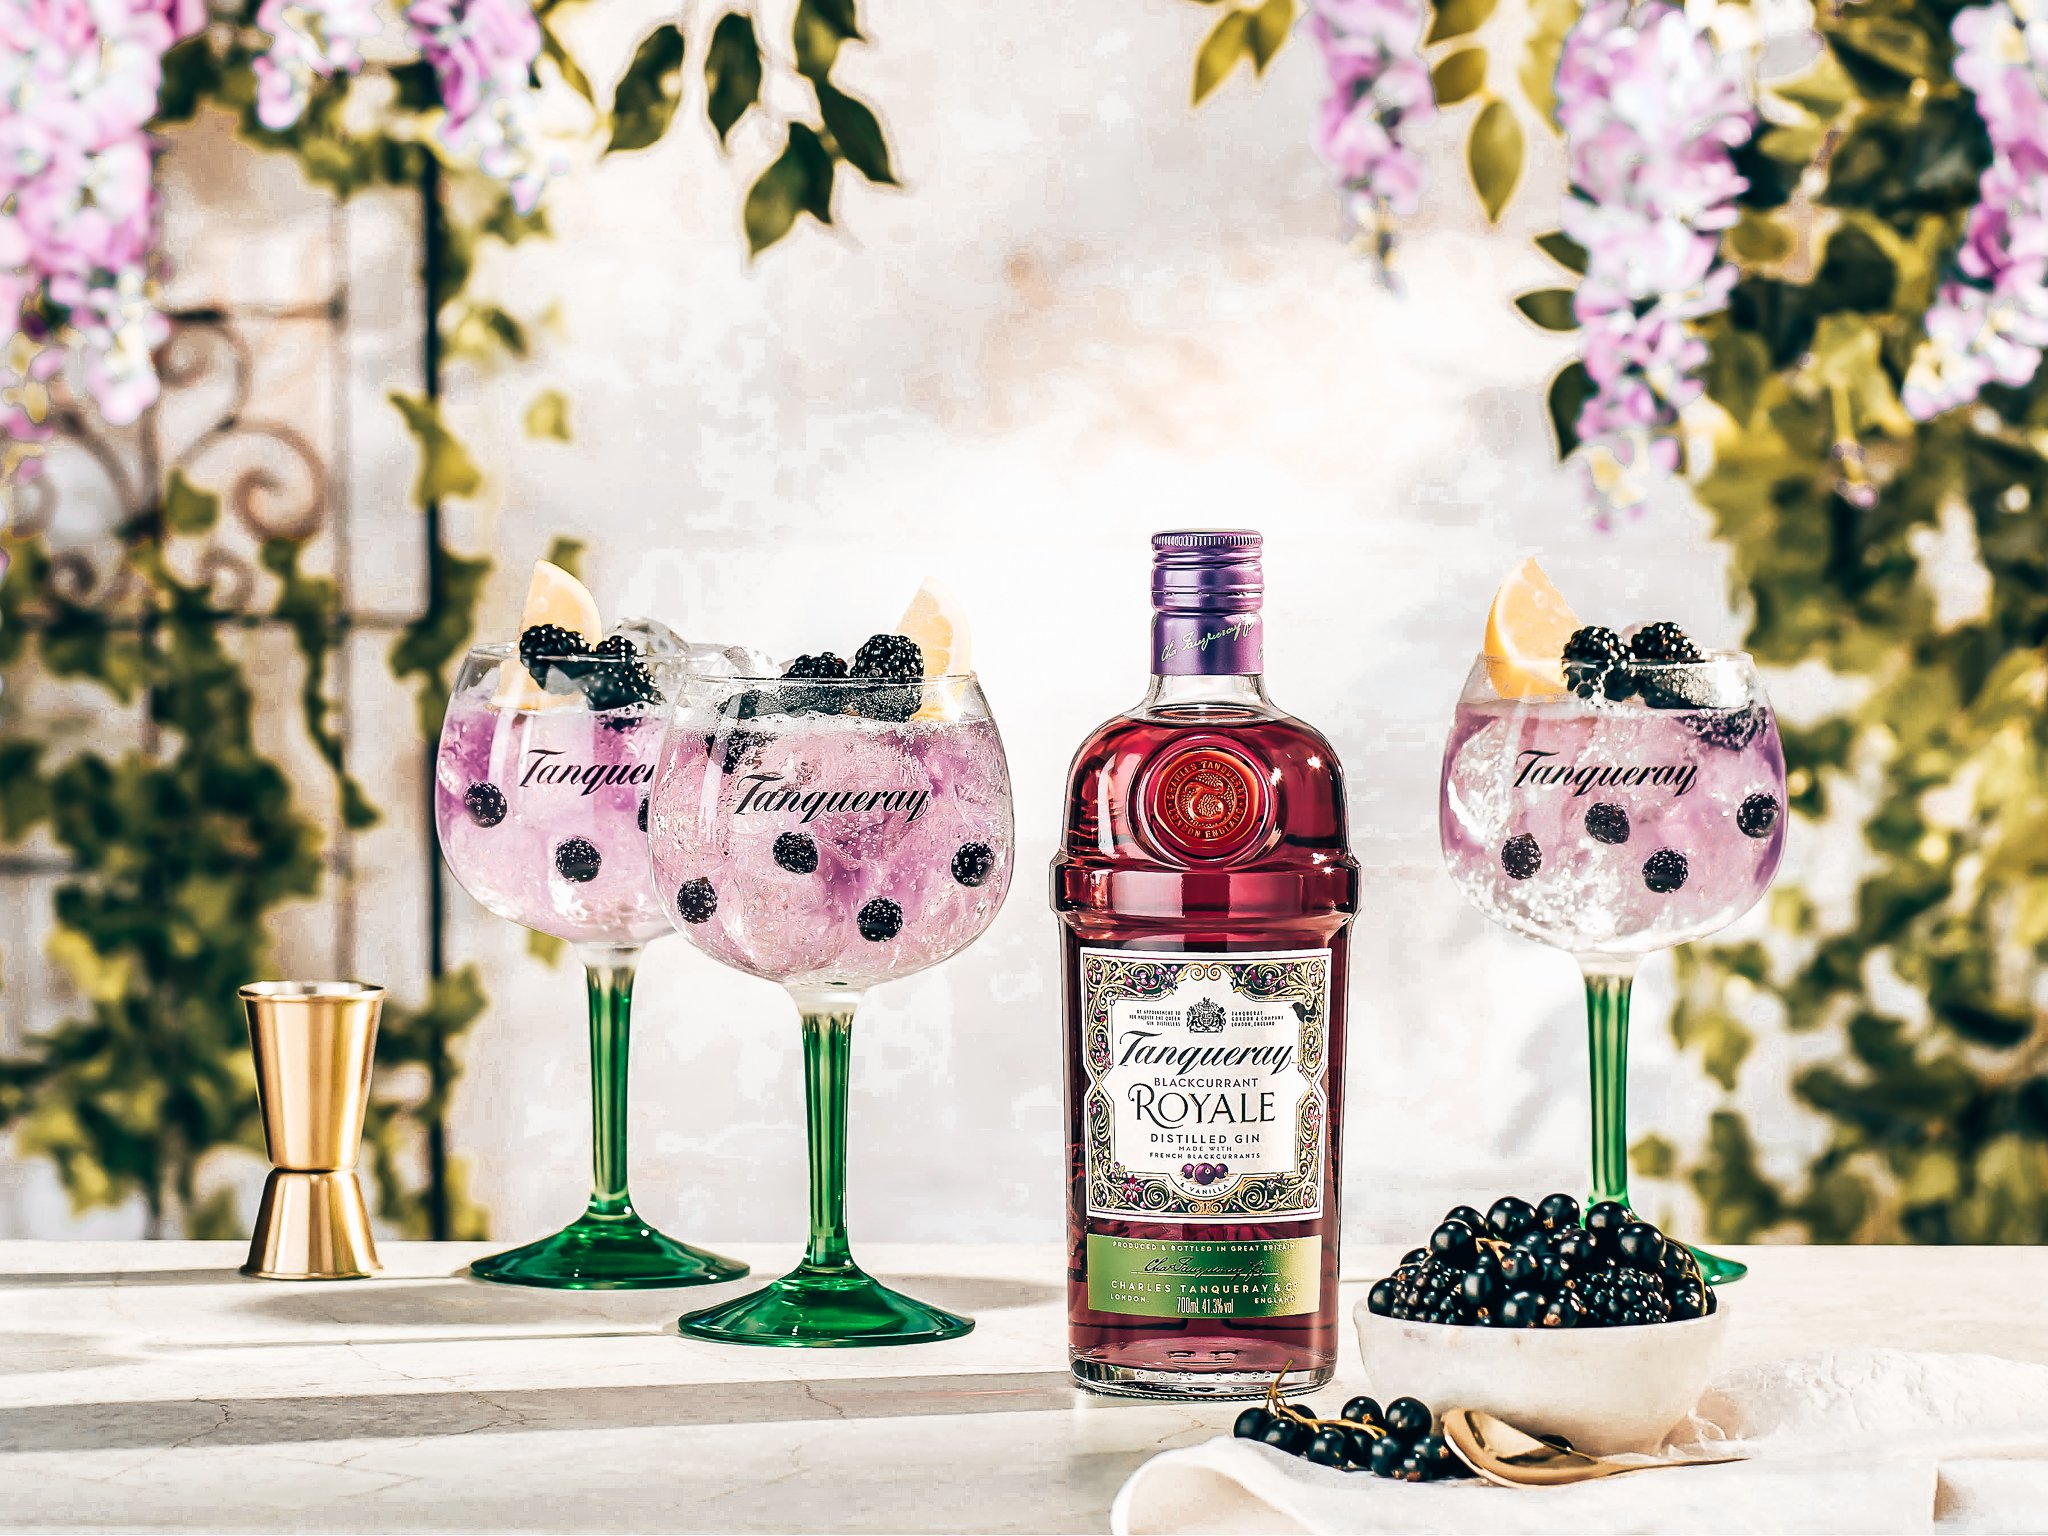 Tanqueray Blackcurrant Royale Gin, Gin-tonic recept, Alles over gin,